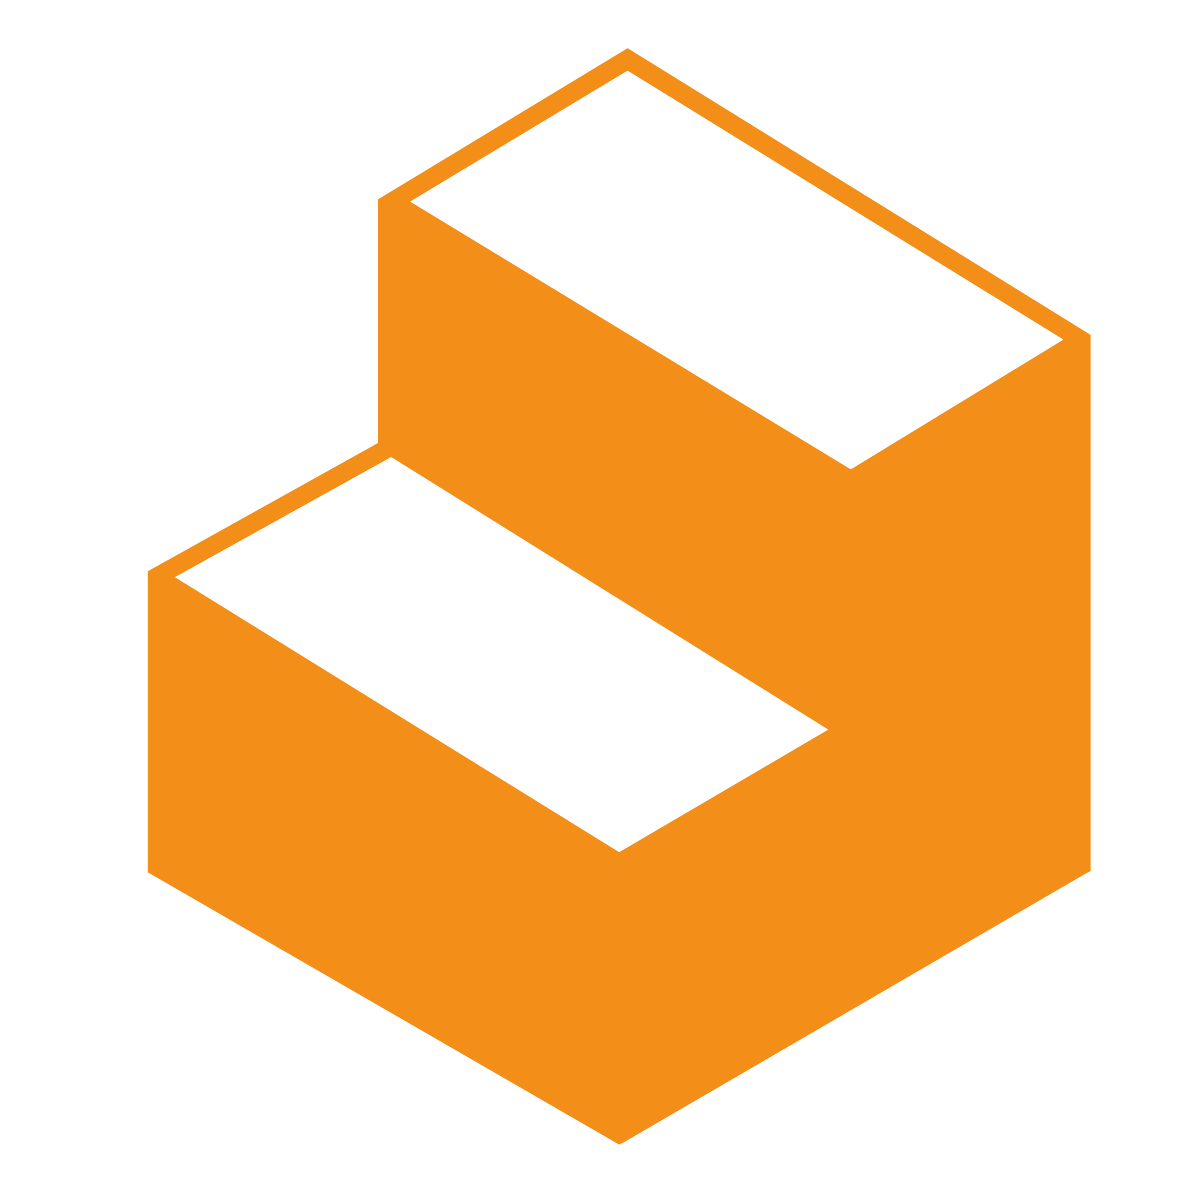 Orange-coloured icon of two steps